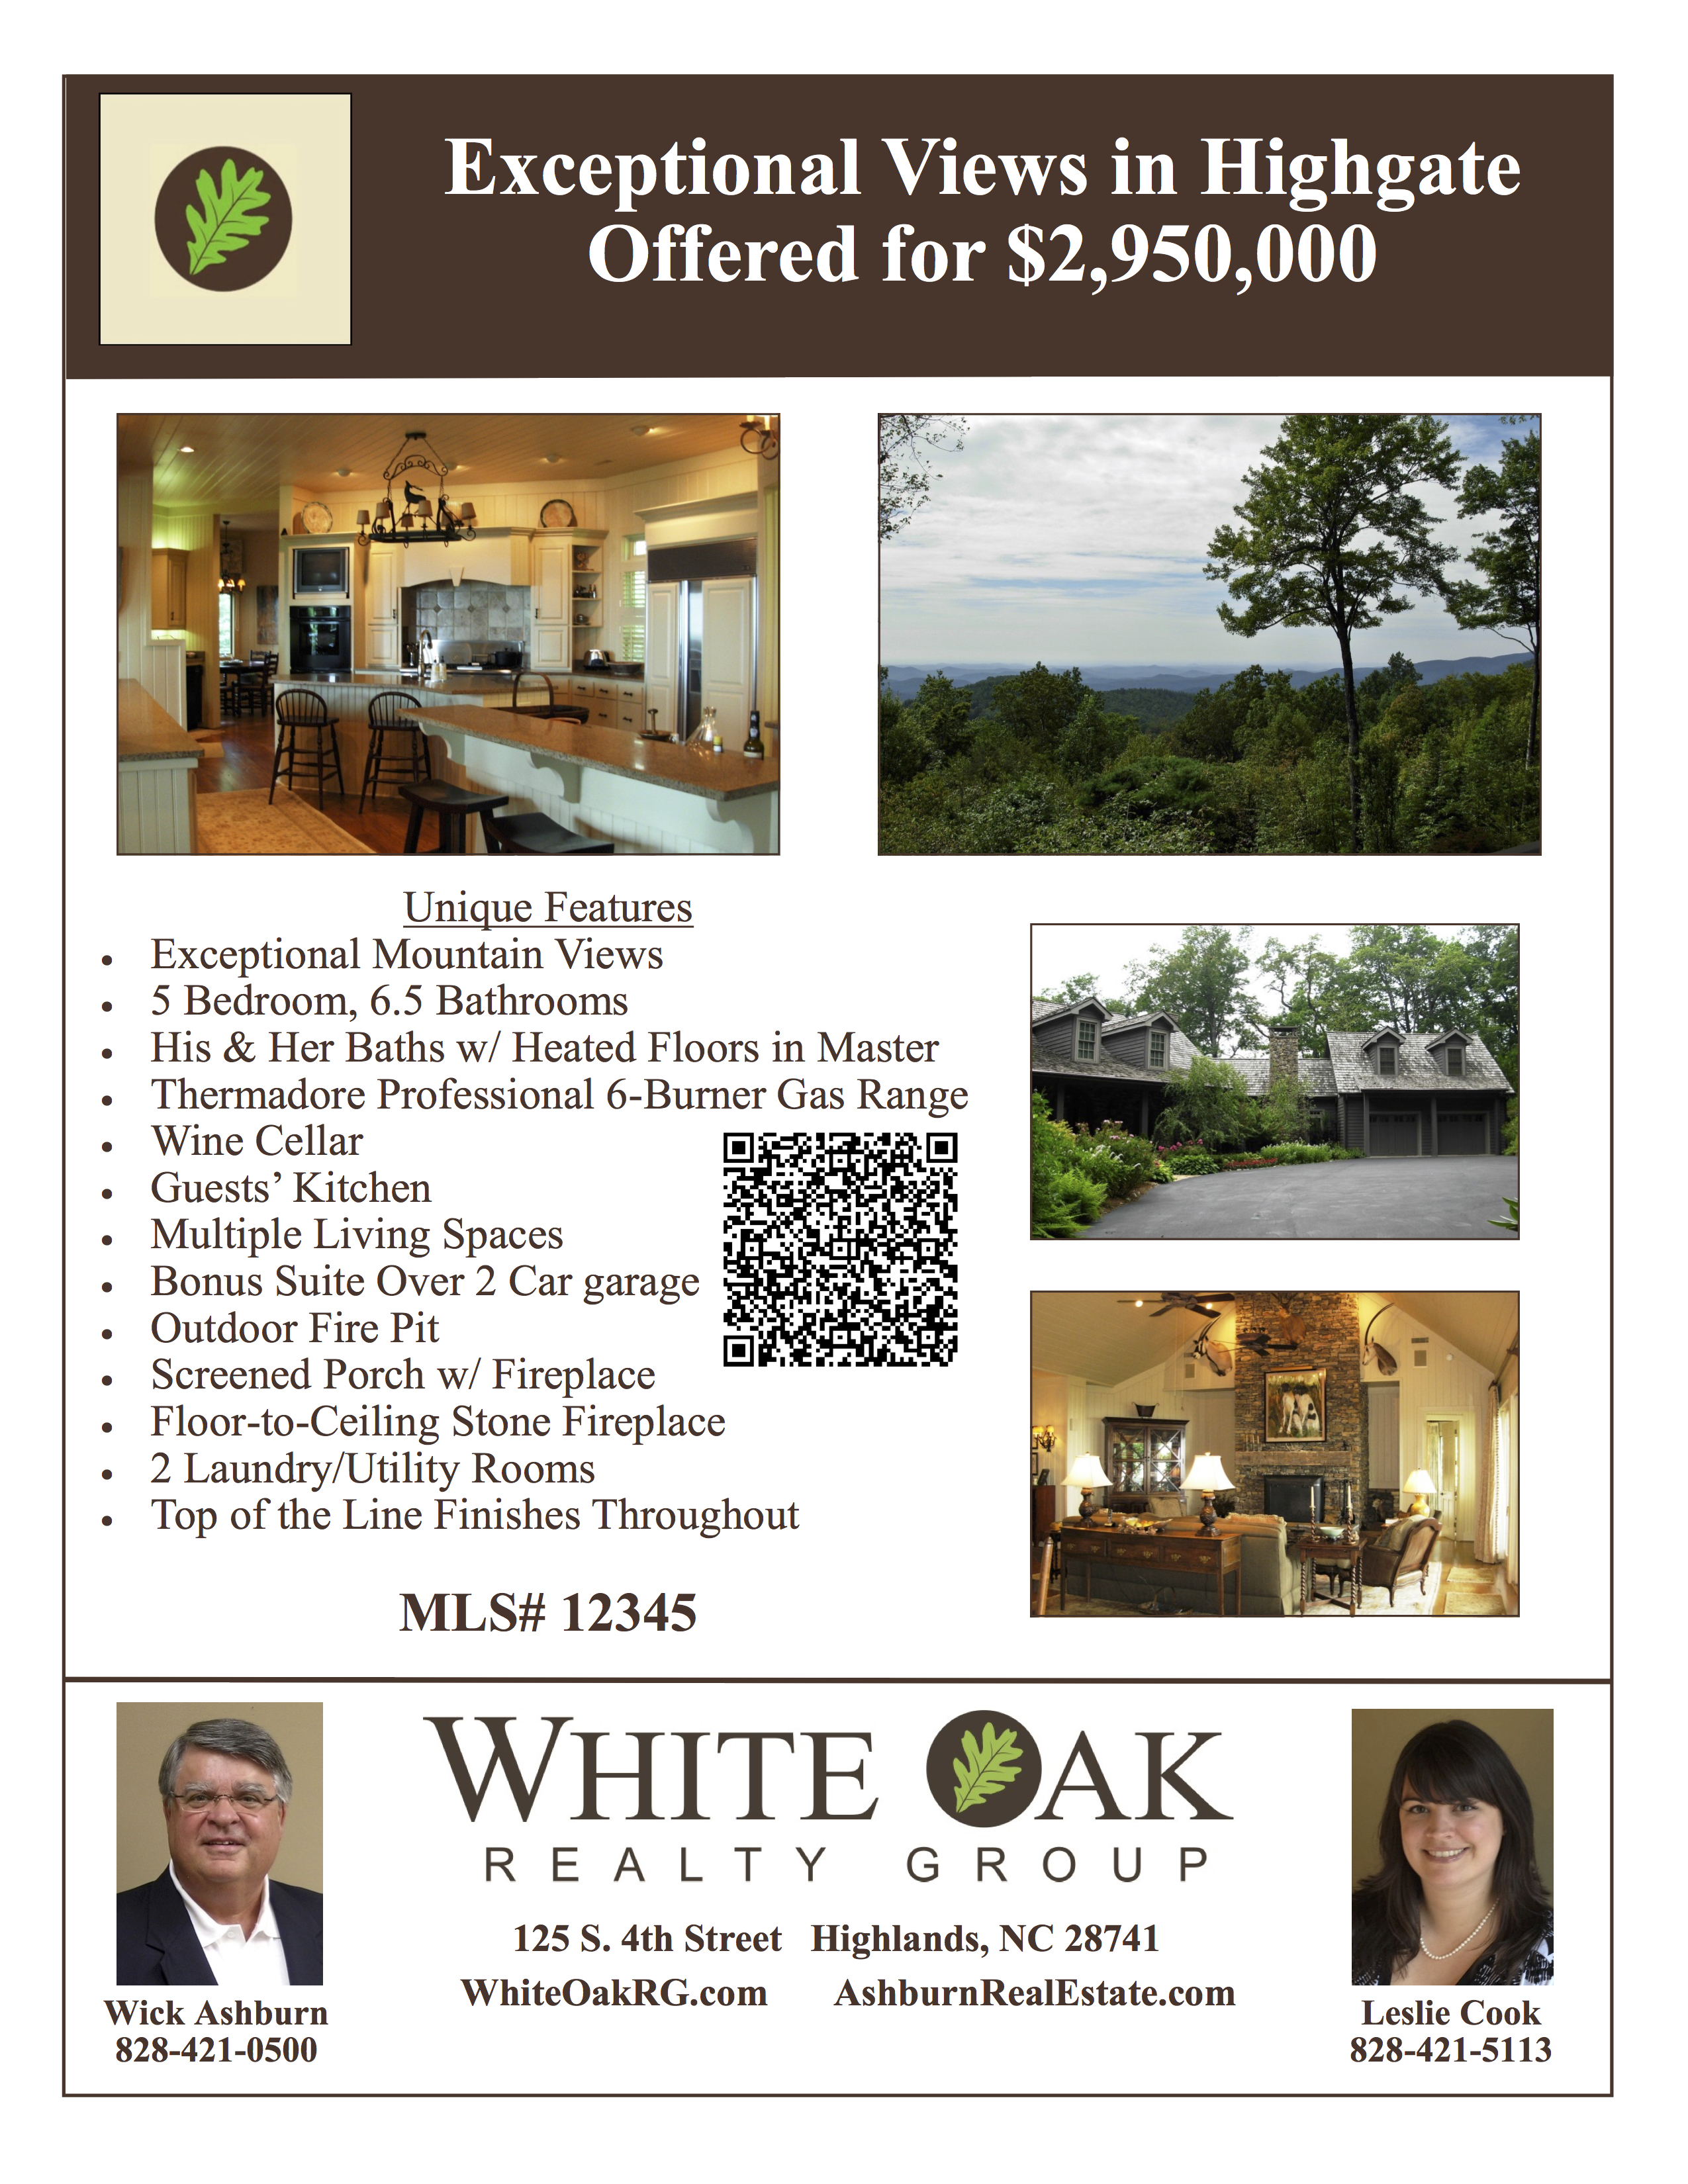 create a real estate property flyer 8.5x11 or smaller